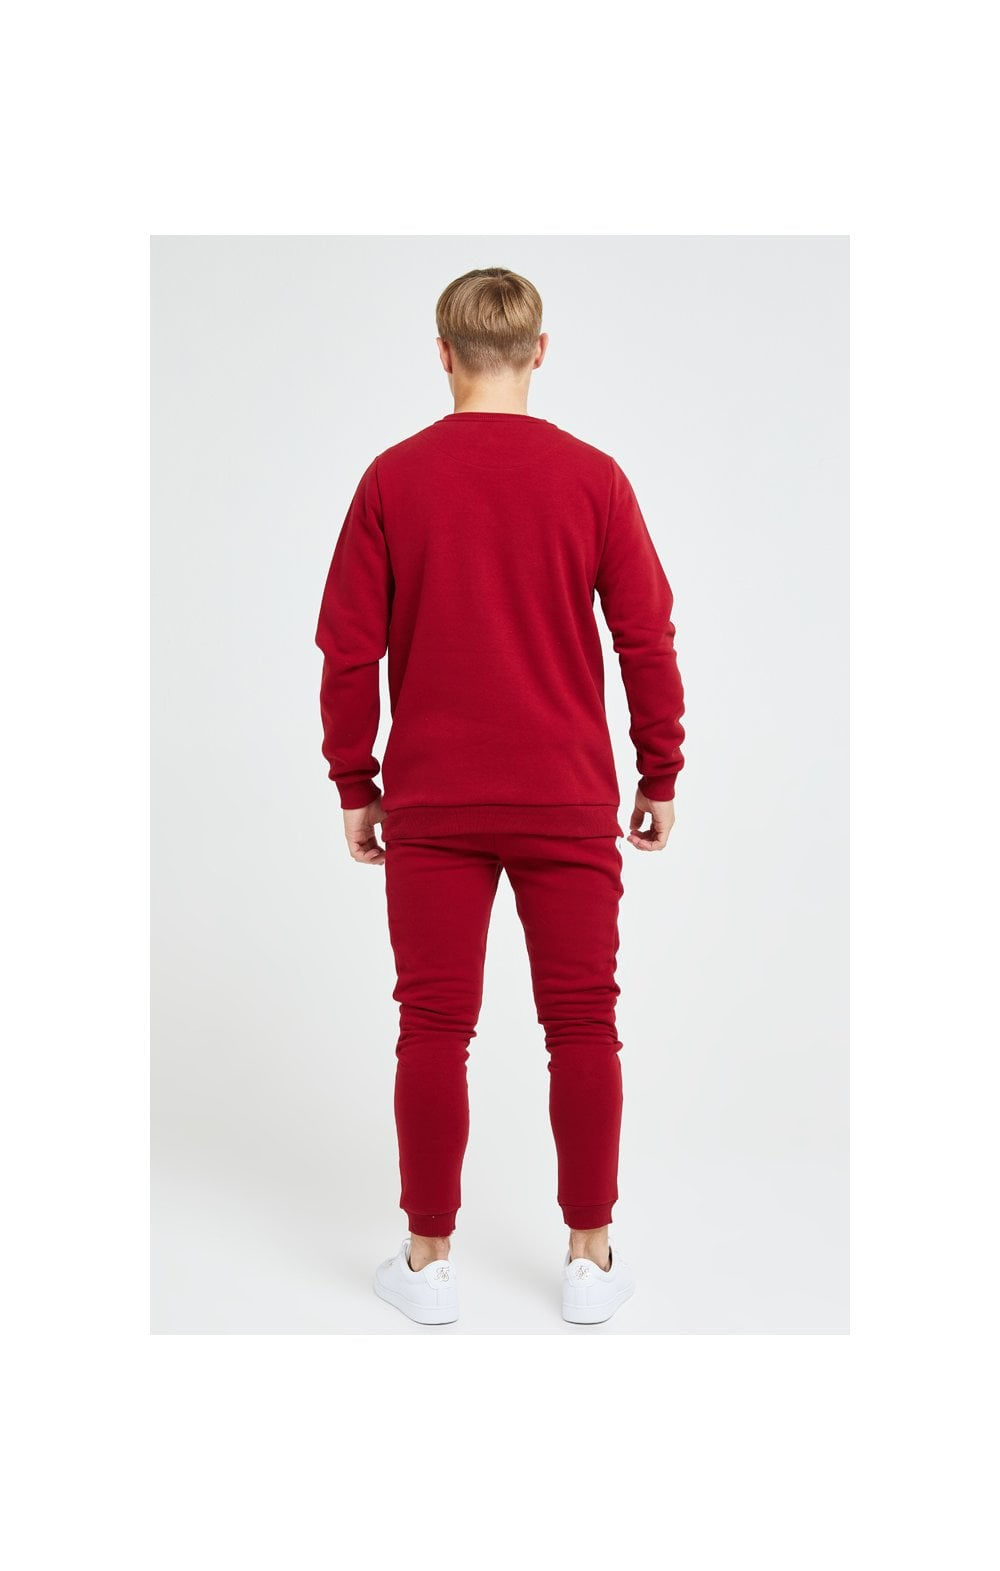 Illusive London Divergence Crew Sweater - Red & Pink (4)